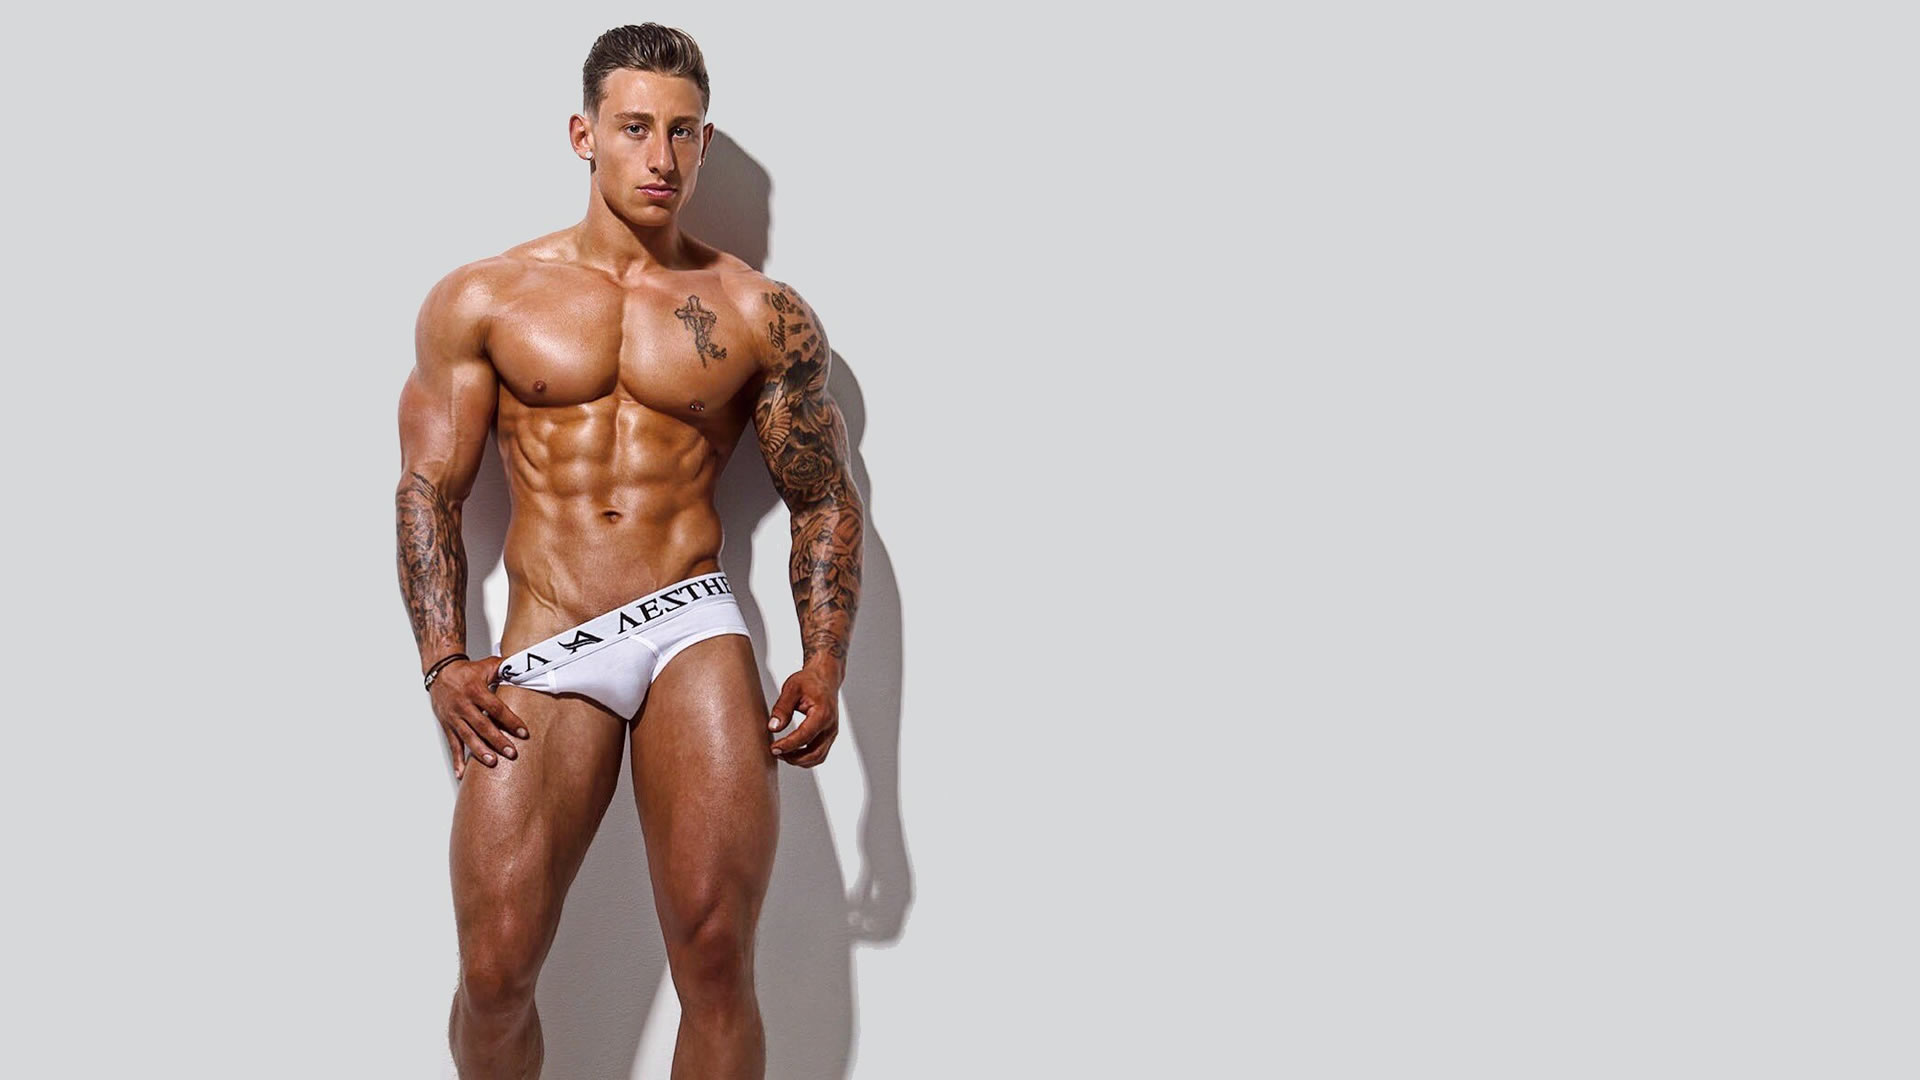 Muscular Stud in White Briefs